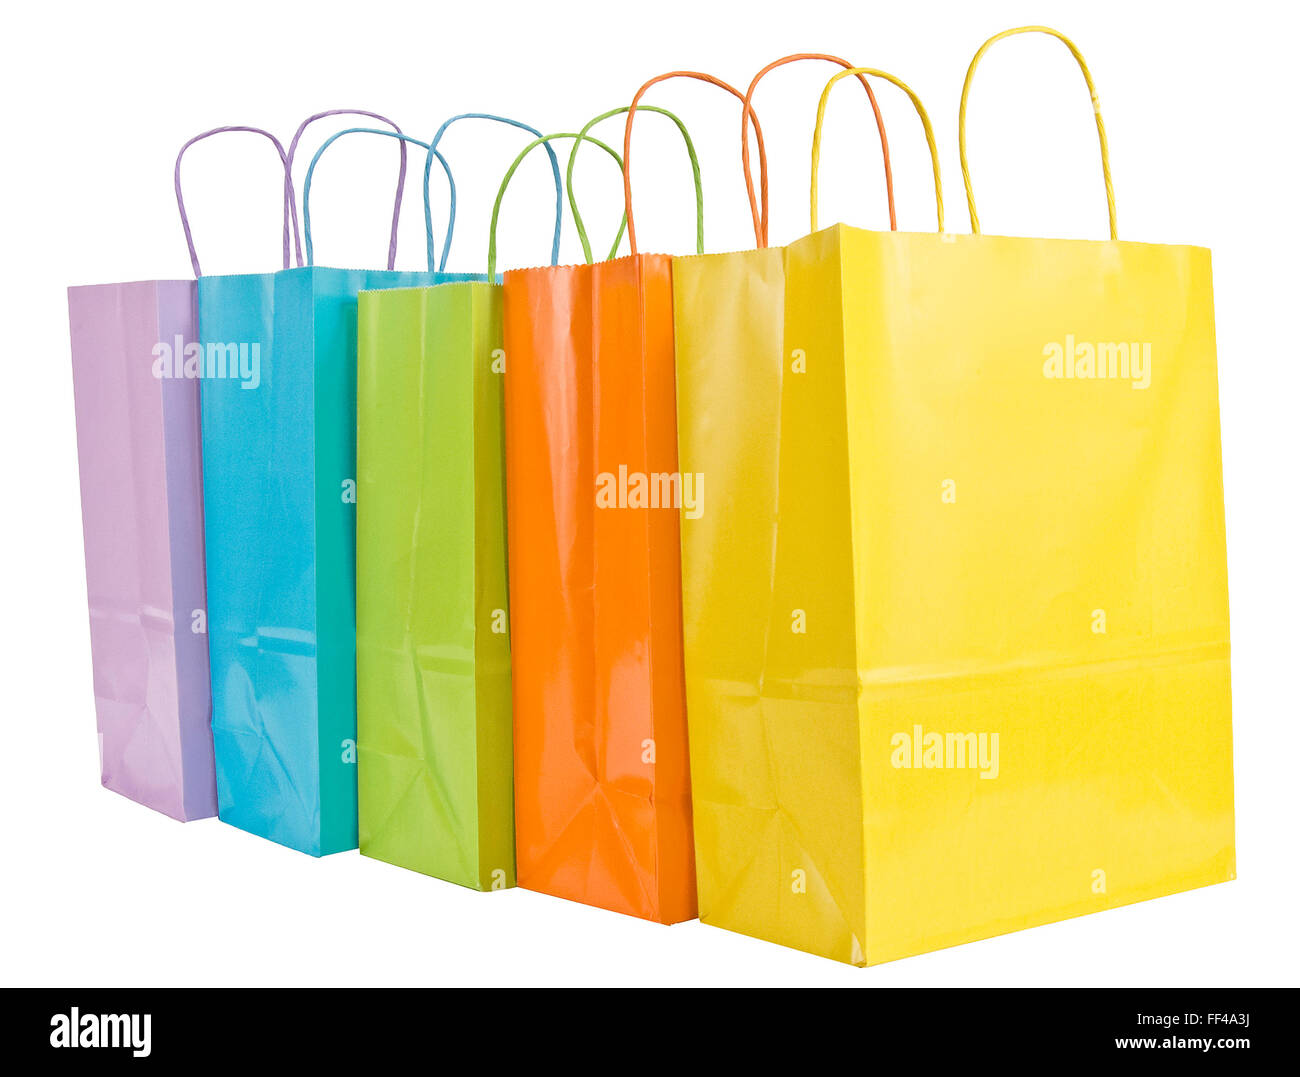 Five Pastel Shopping Bags With Handles - Stock Image